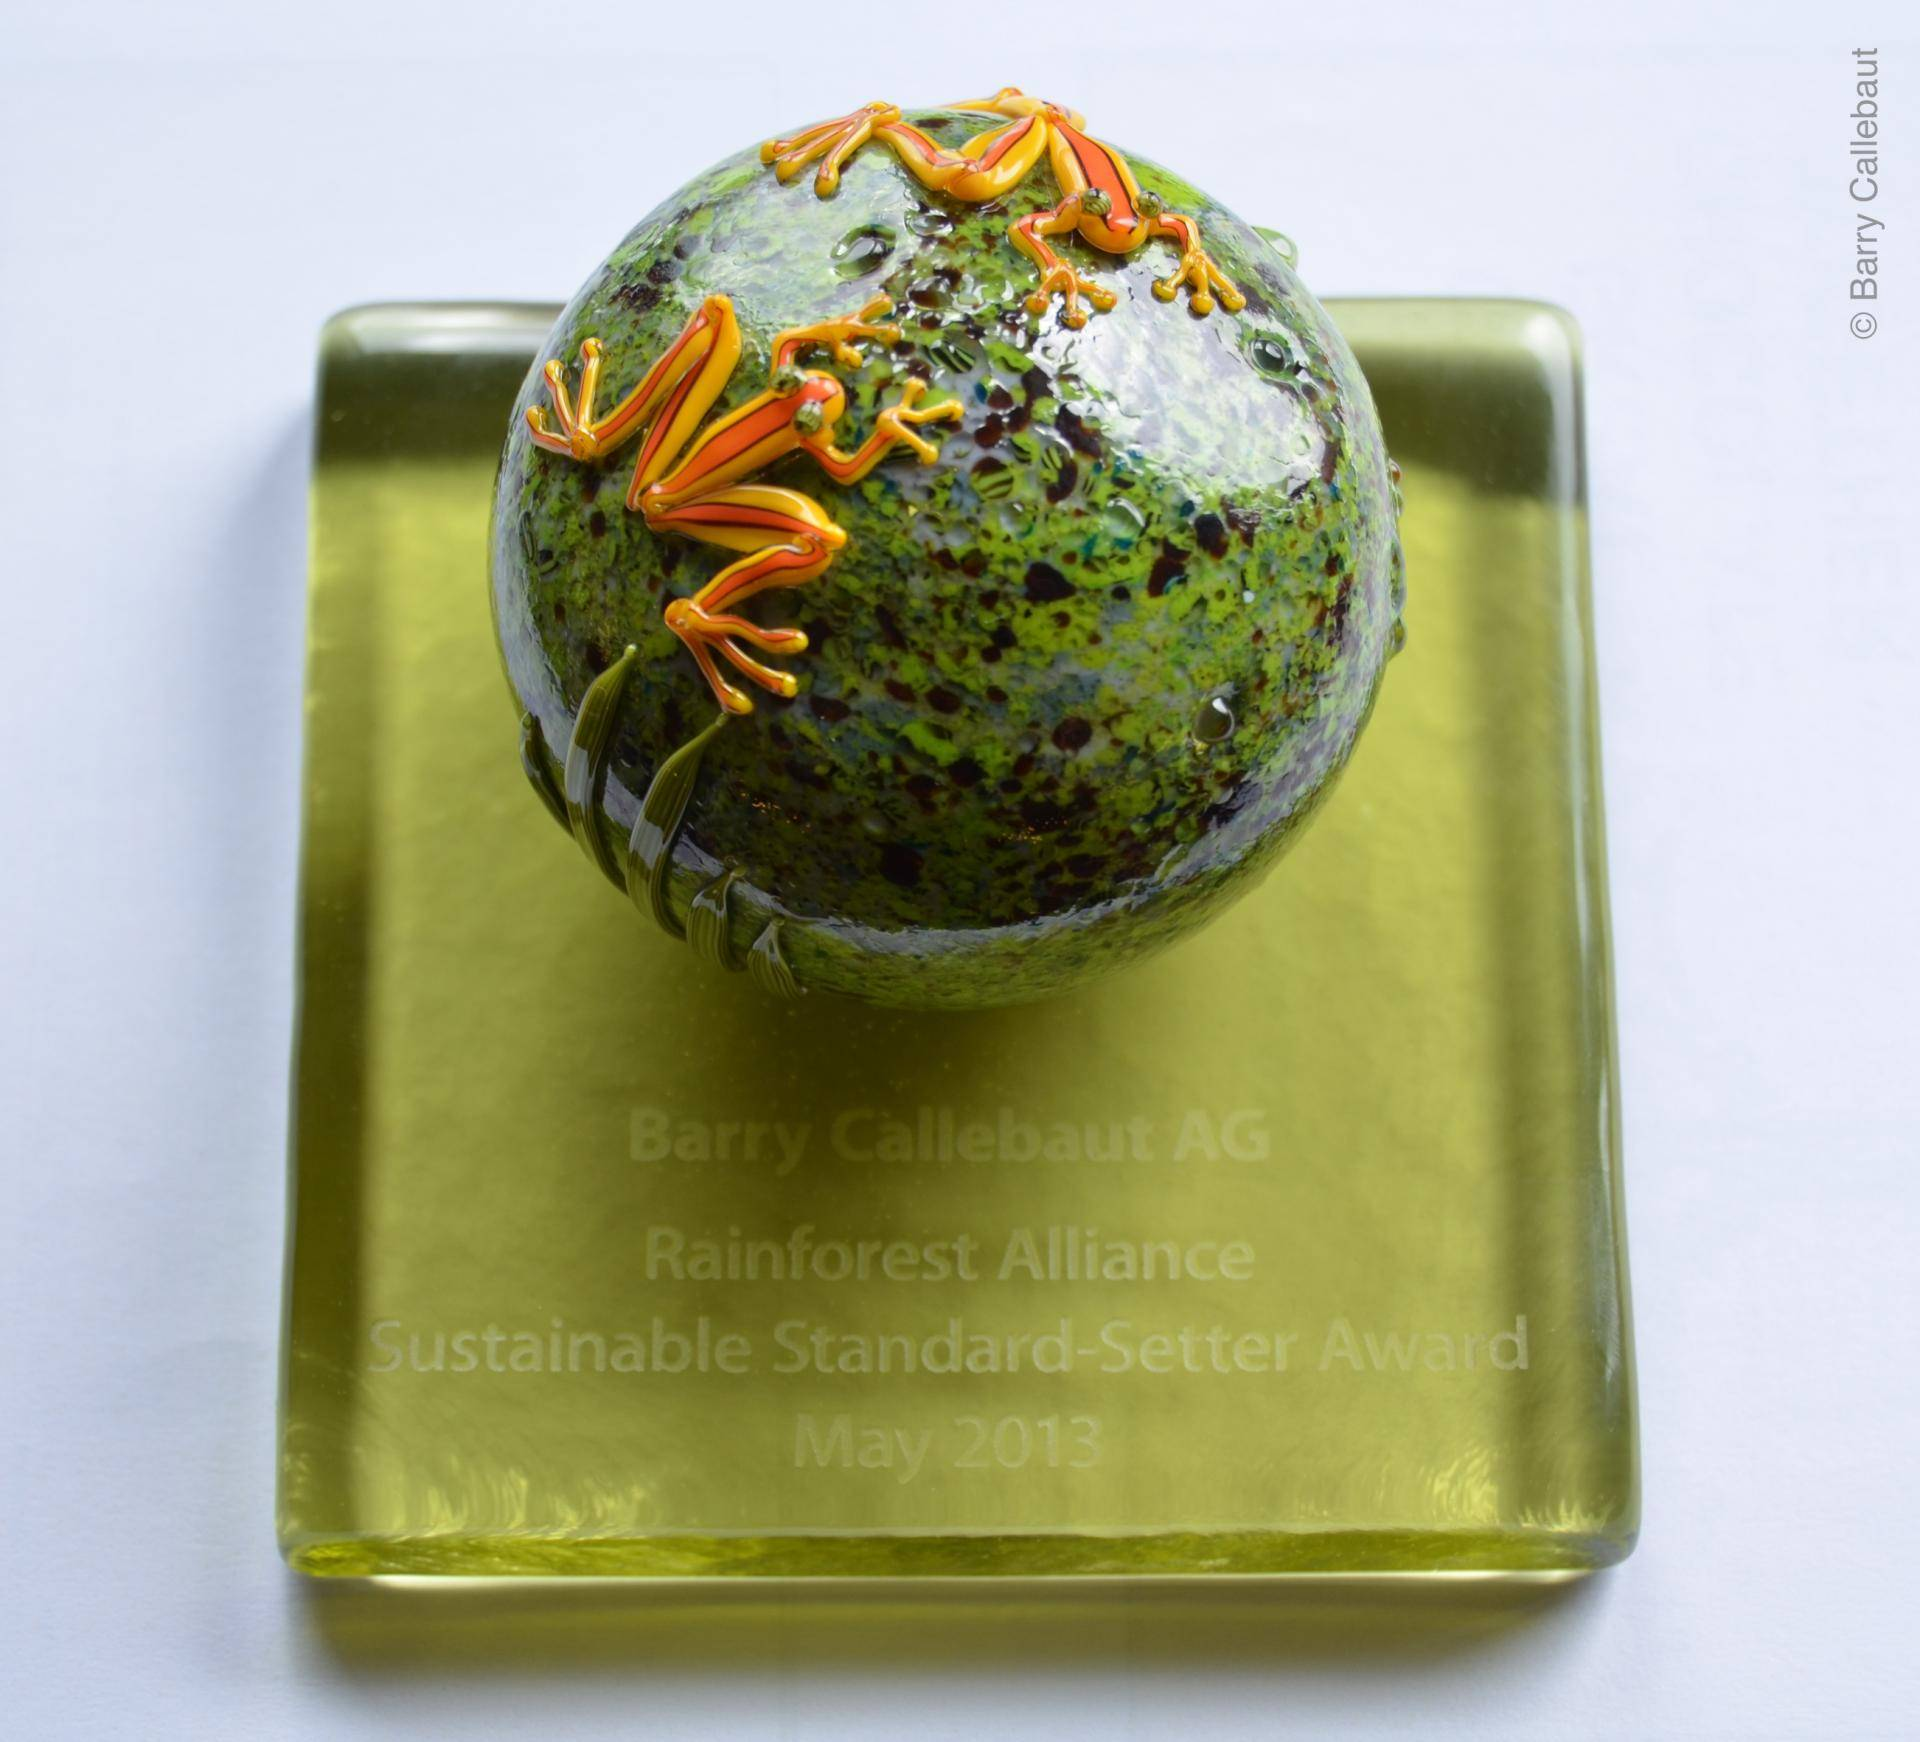 Rainforest Alliance Sustainable Standard-Setter Award